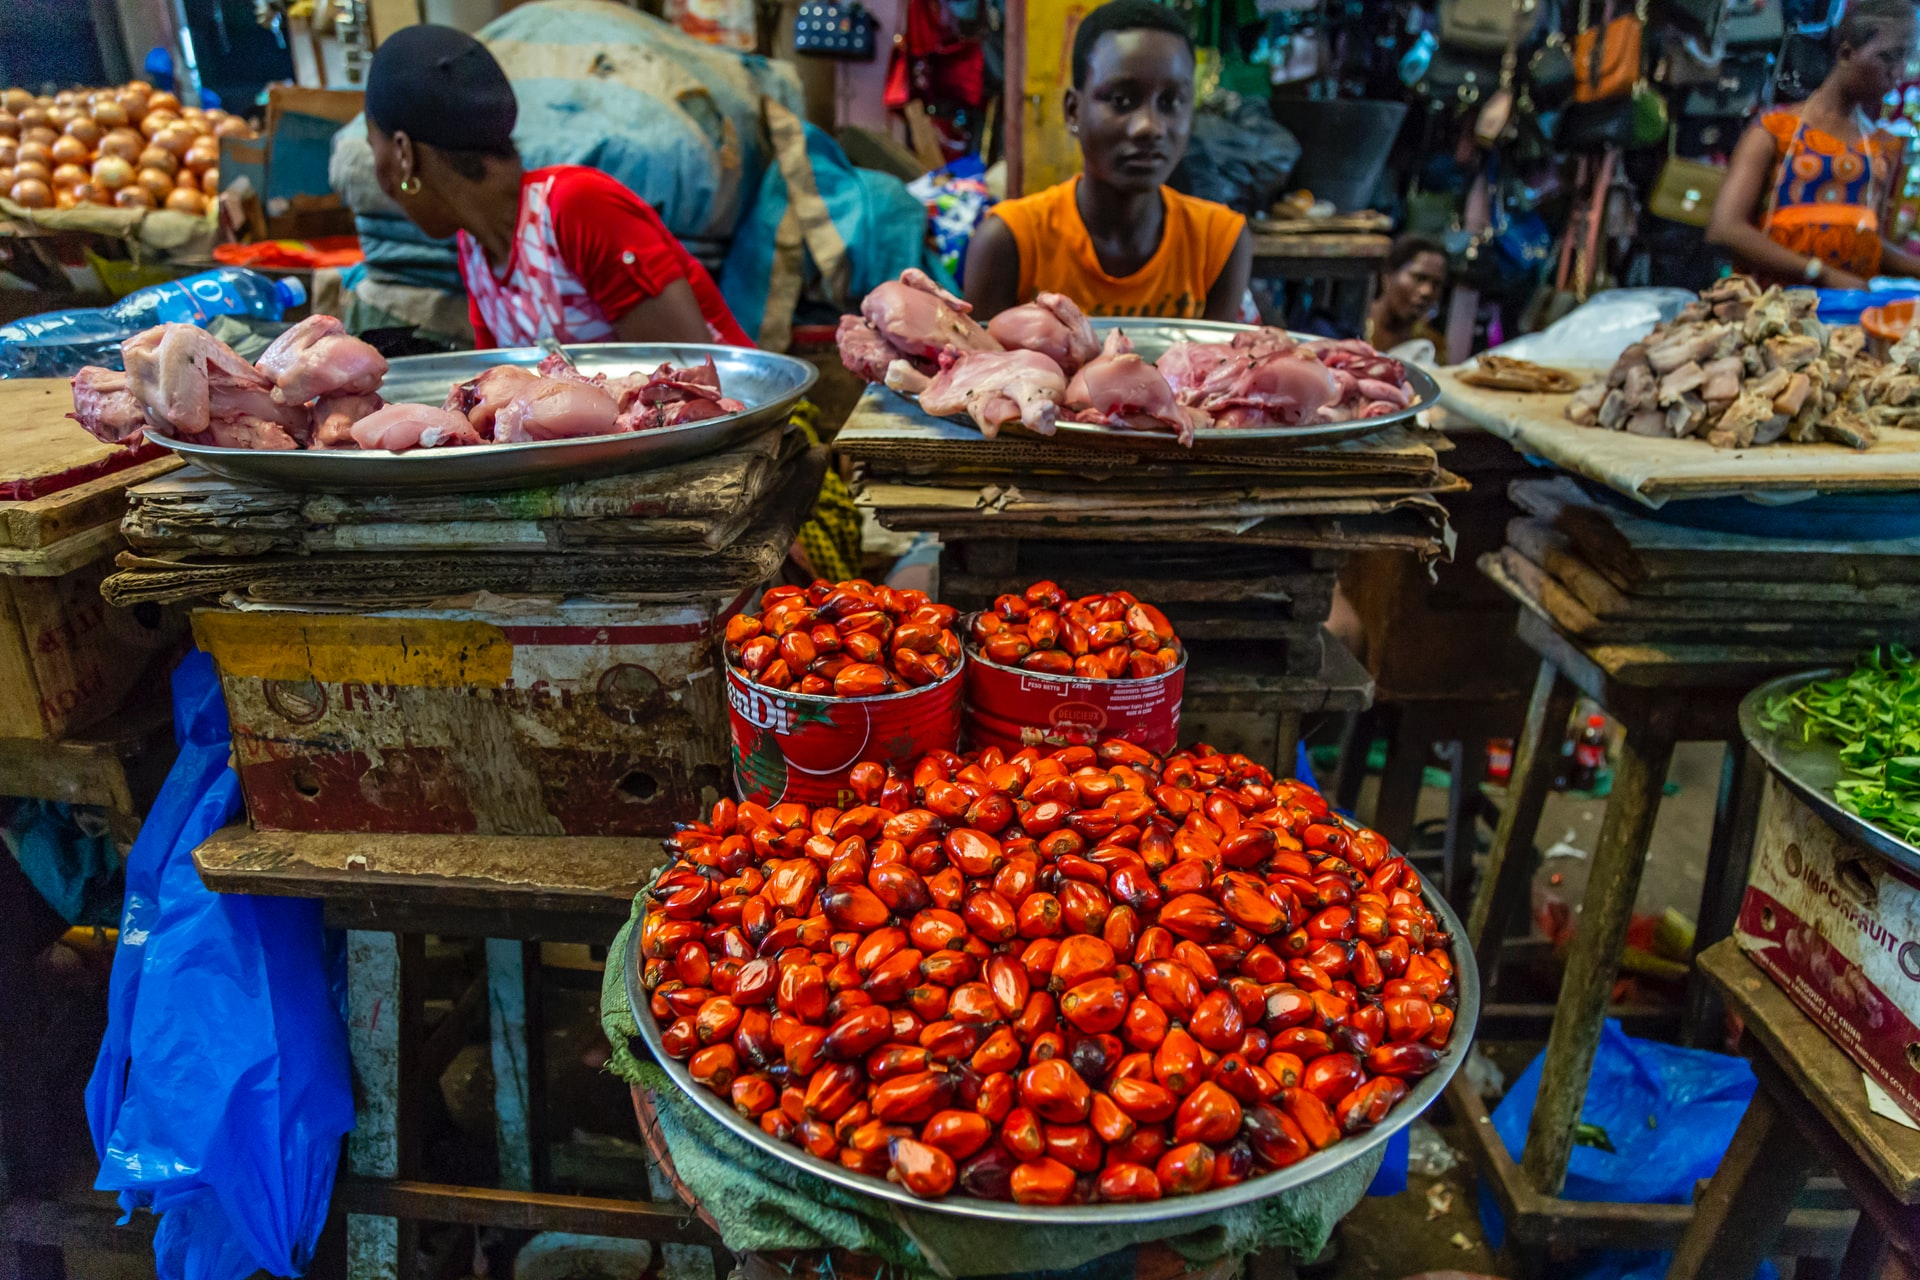 COVID-19 lockdowns threaten Africa's vital informal urban food trade